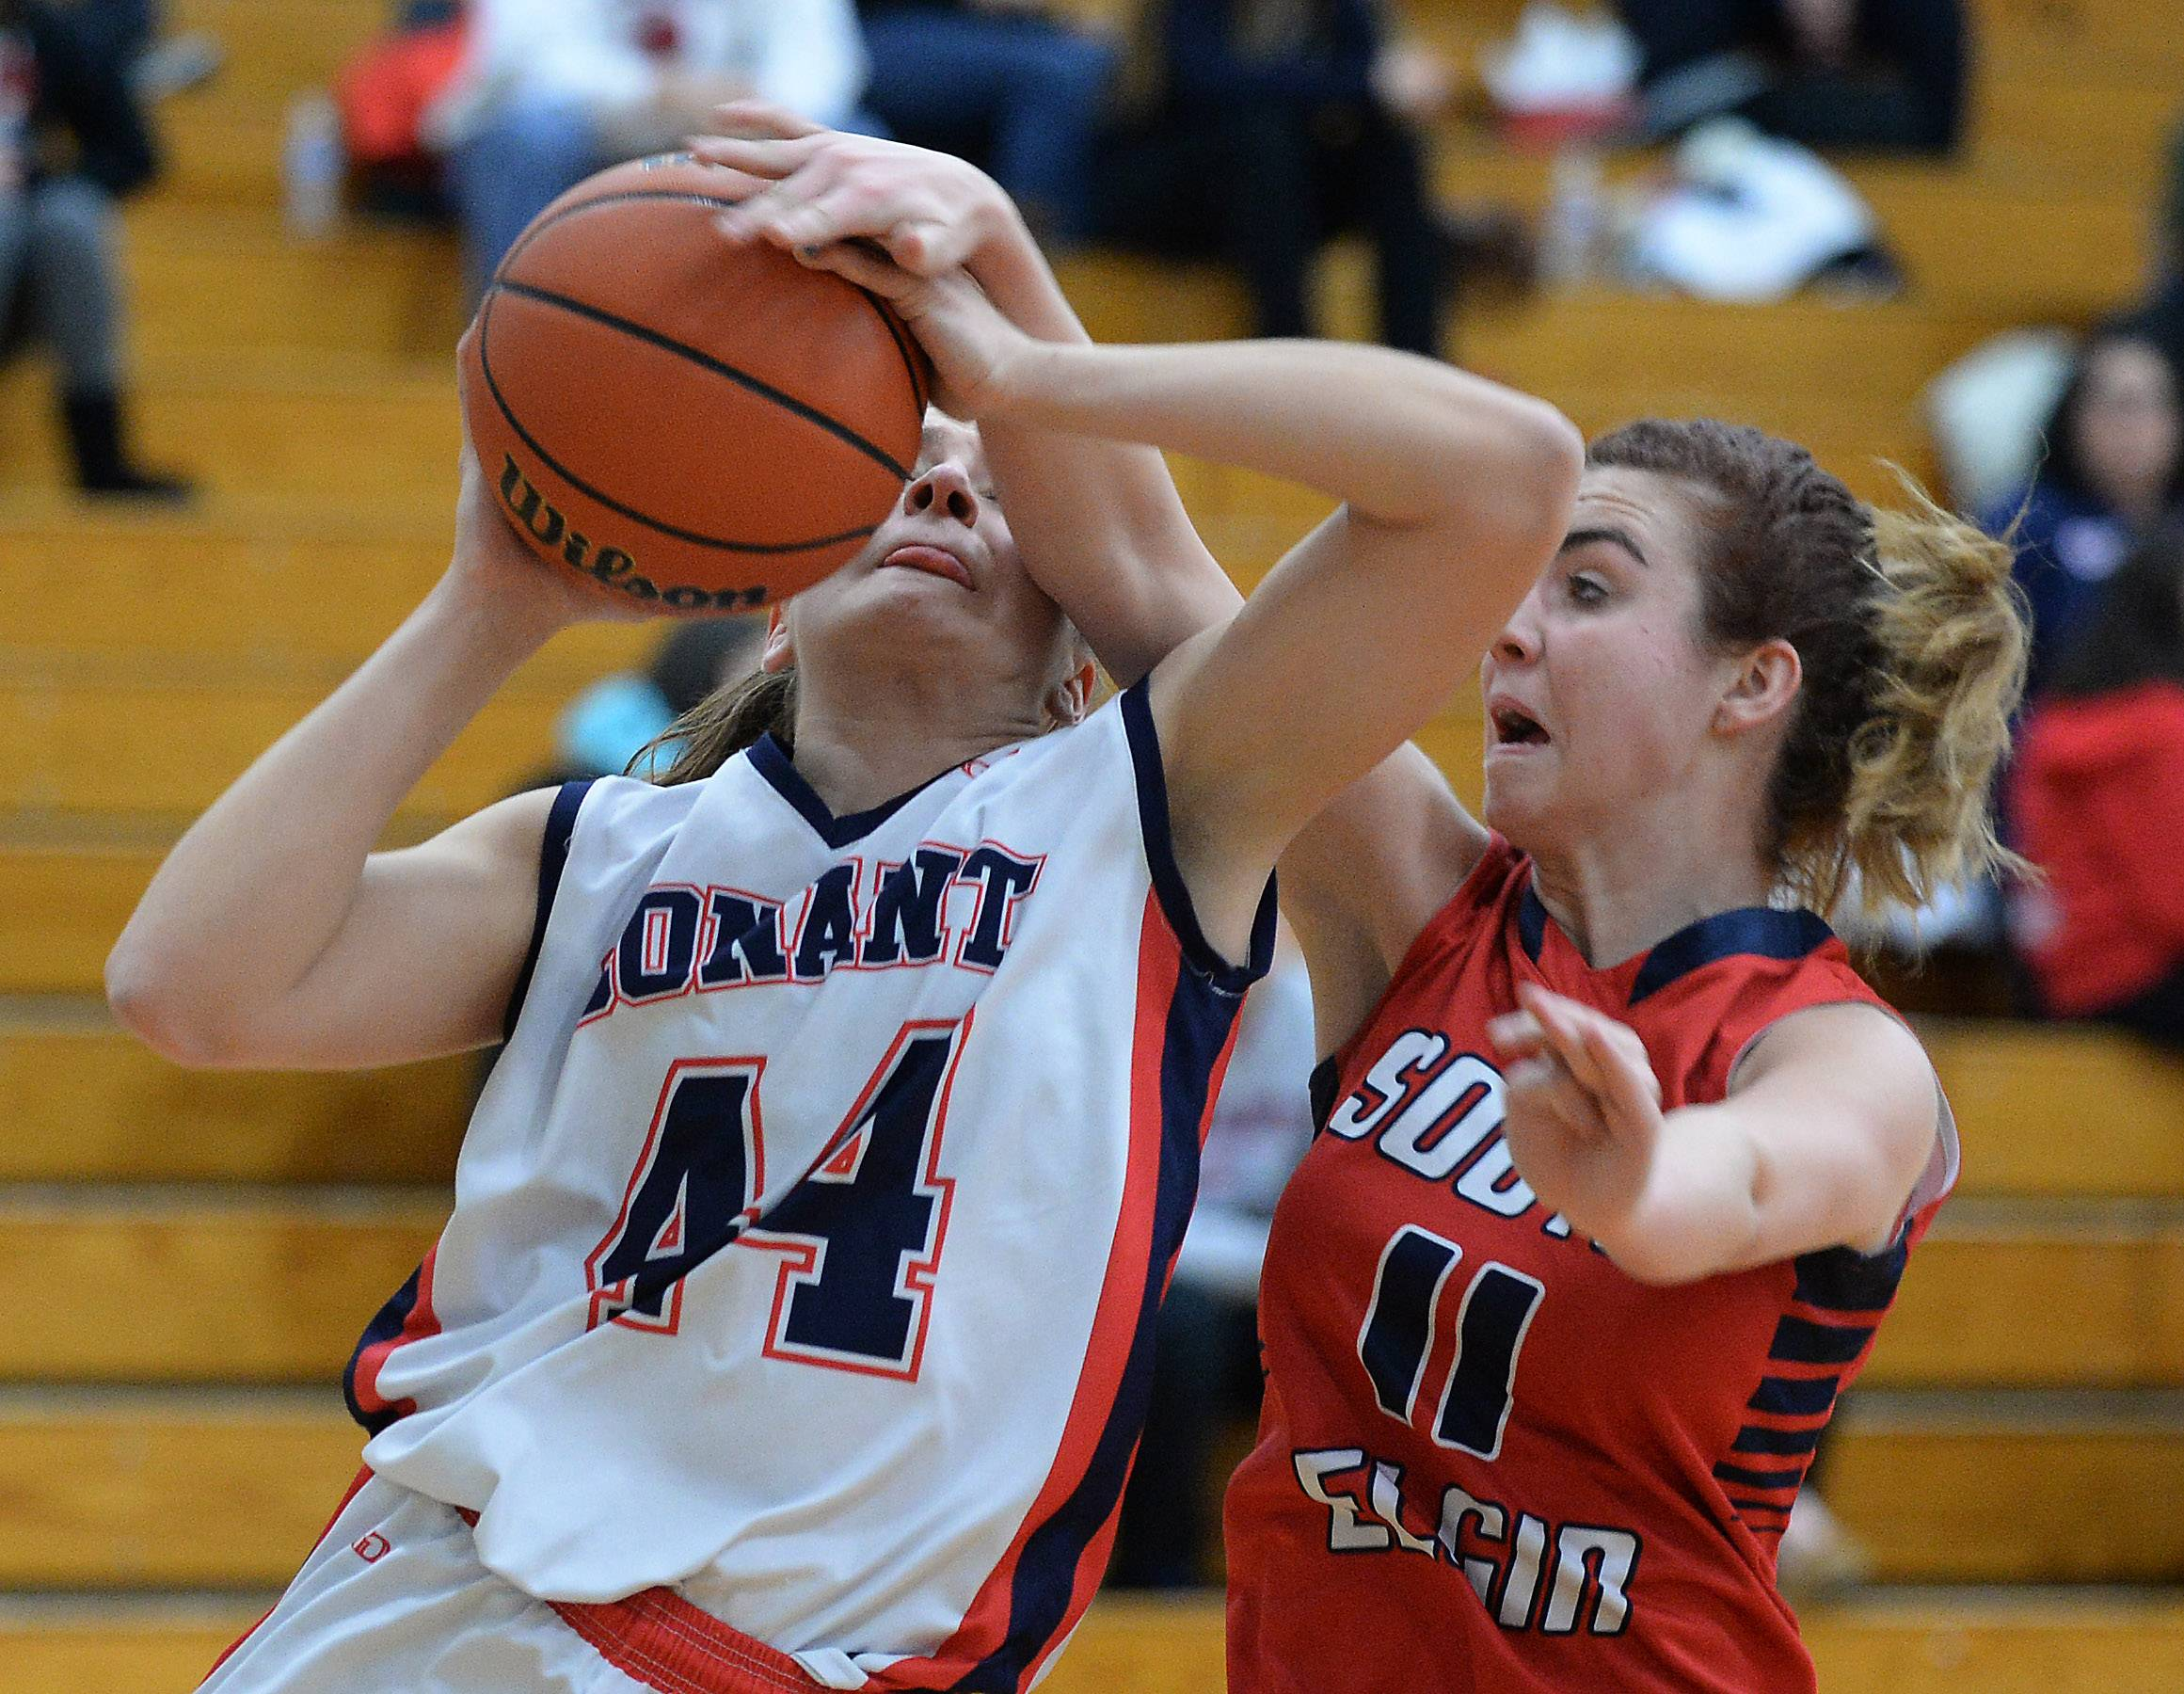 Conant's Jorie Wachal is fouled by South Elgin's Delaney Kelleher.